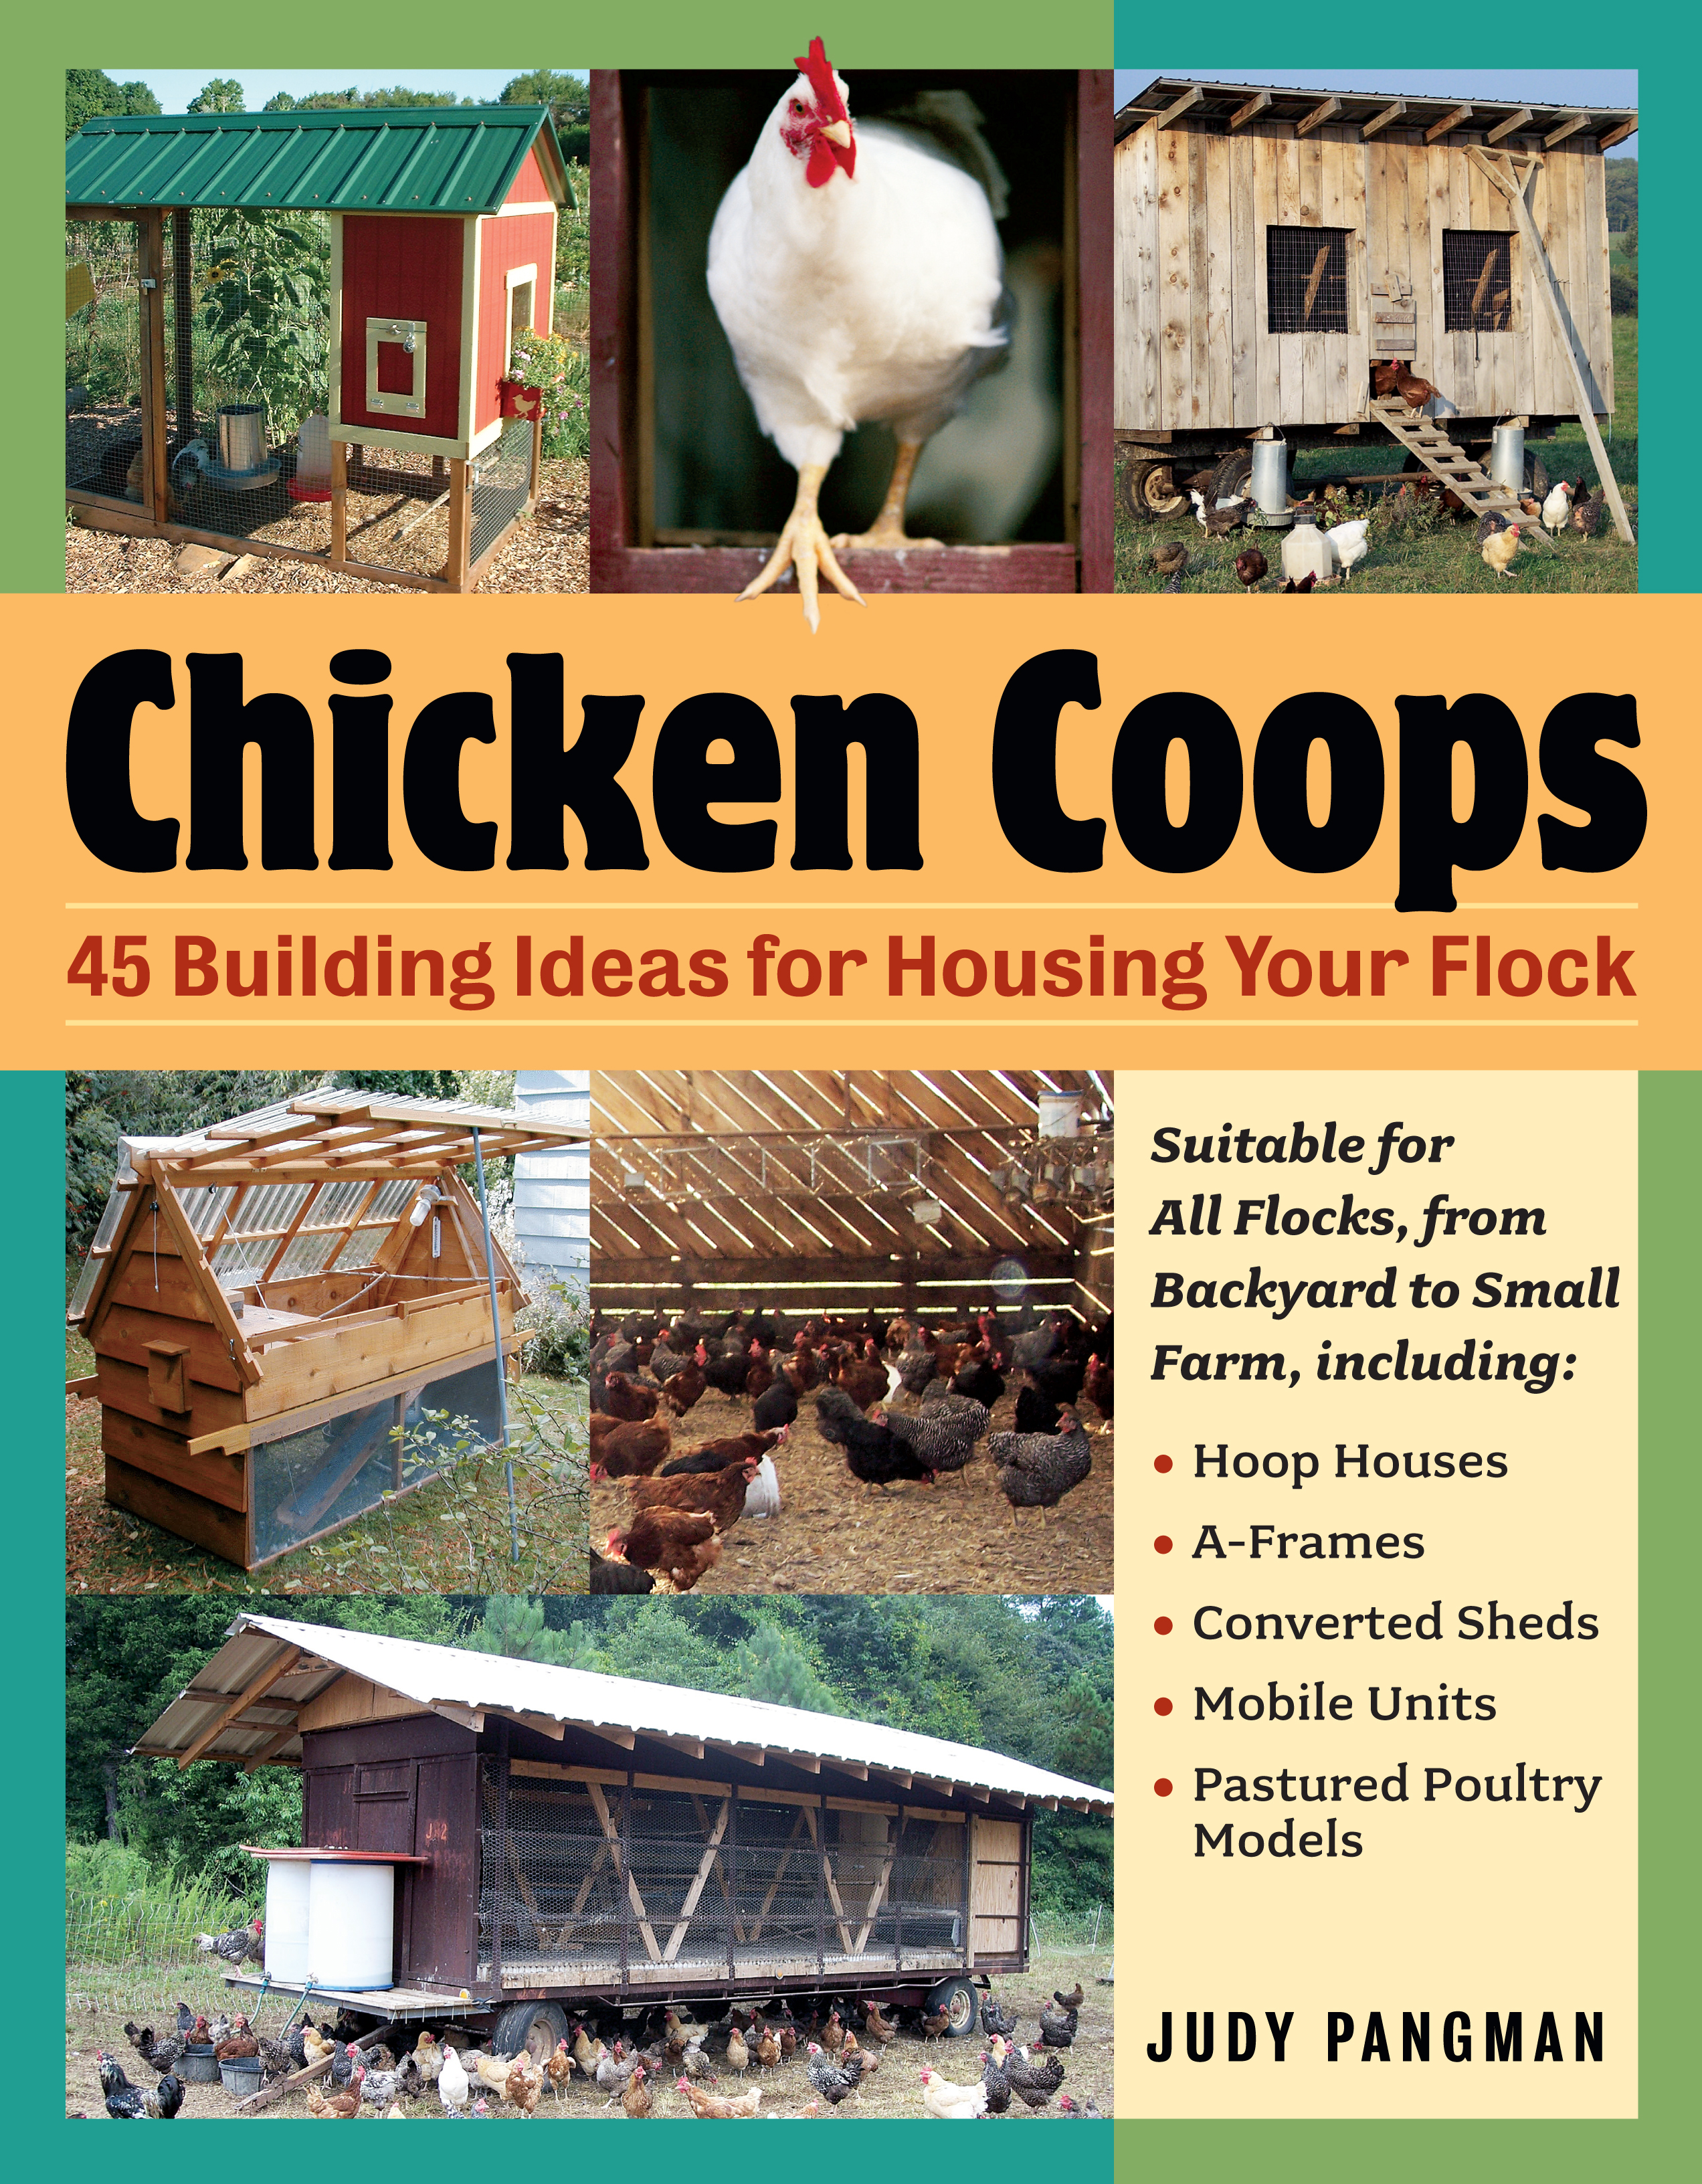 Chicken Coops 45 Building Ideas for Housing Your Flock - Judy Pangman